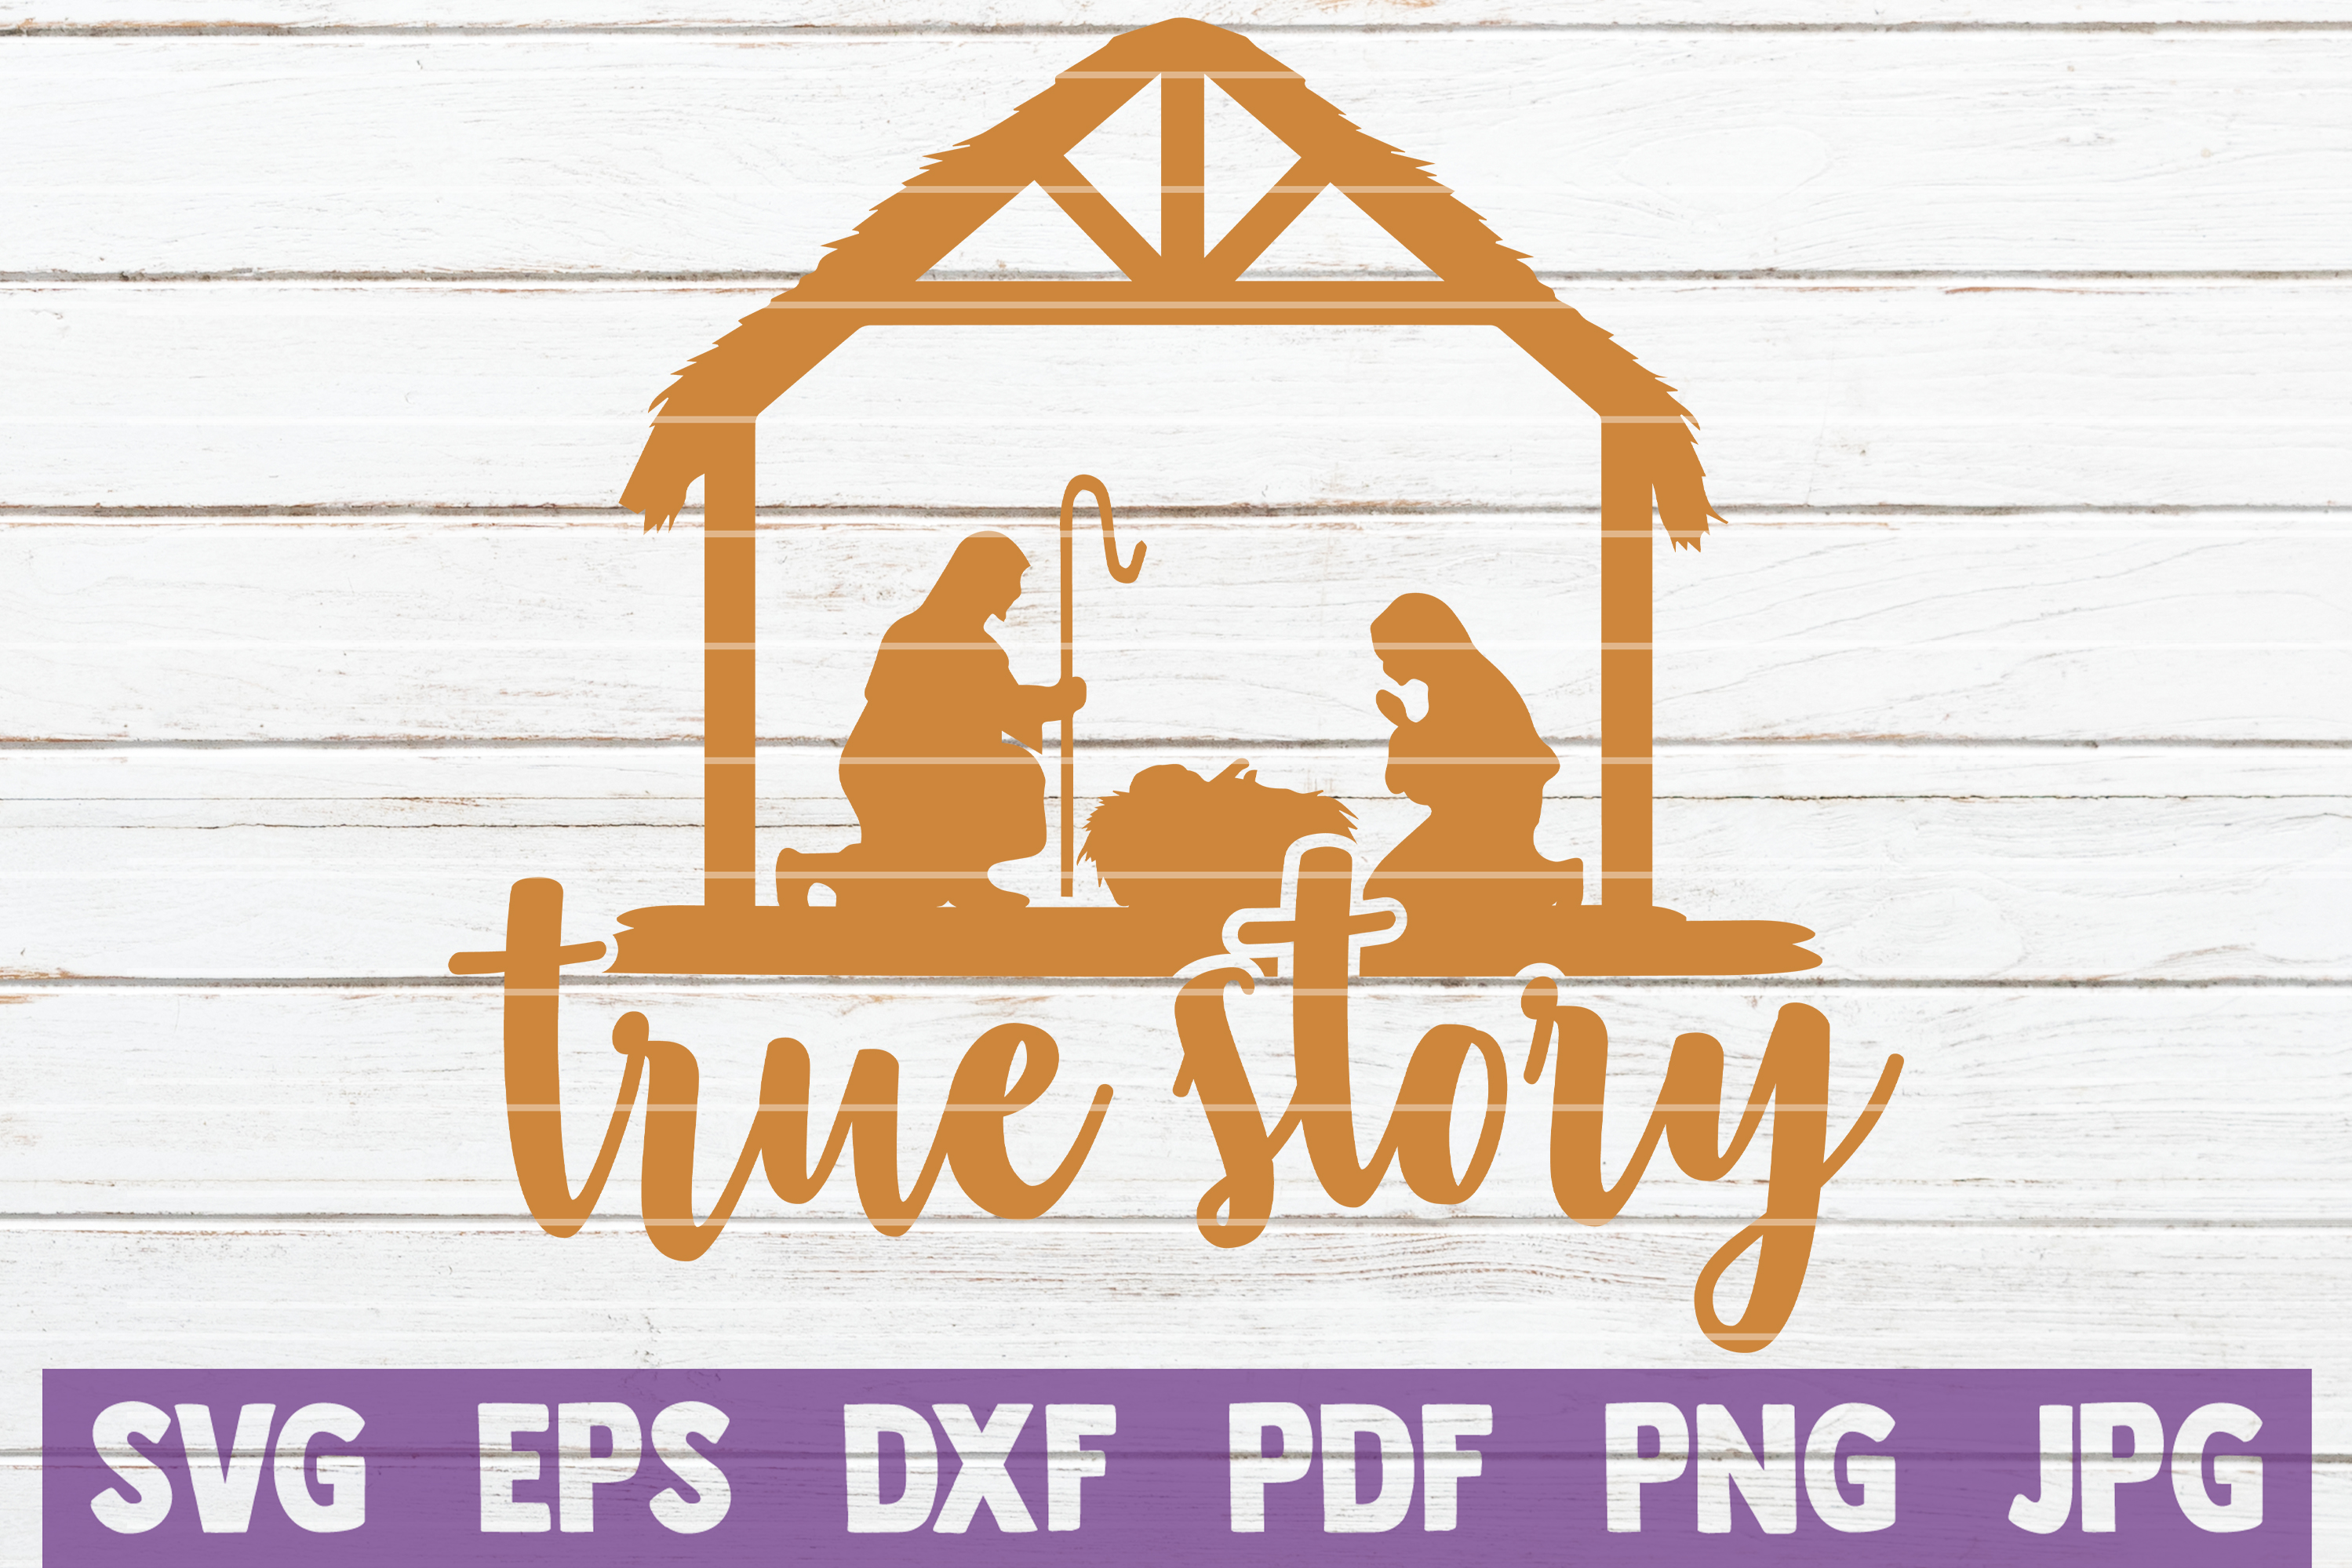 Download Free True Story Graphic By Mintymarshmallows Creative Fabrica for Cricut Explore, Silhouette and other cutting machines.